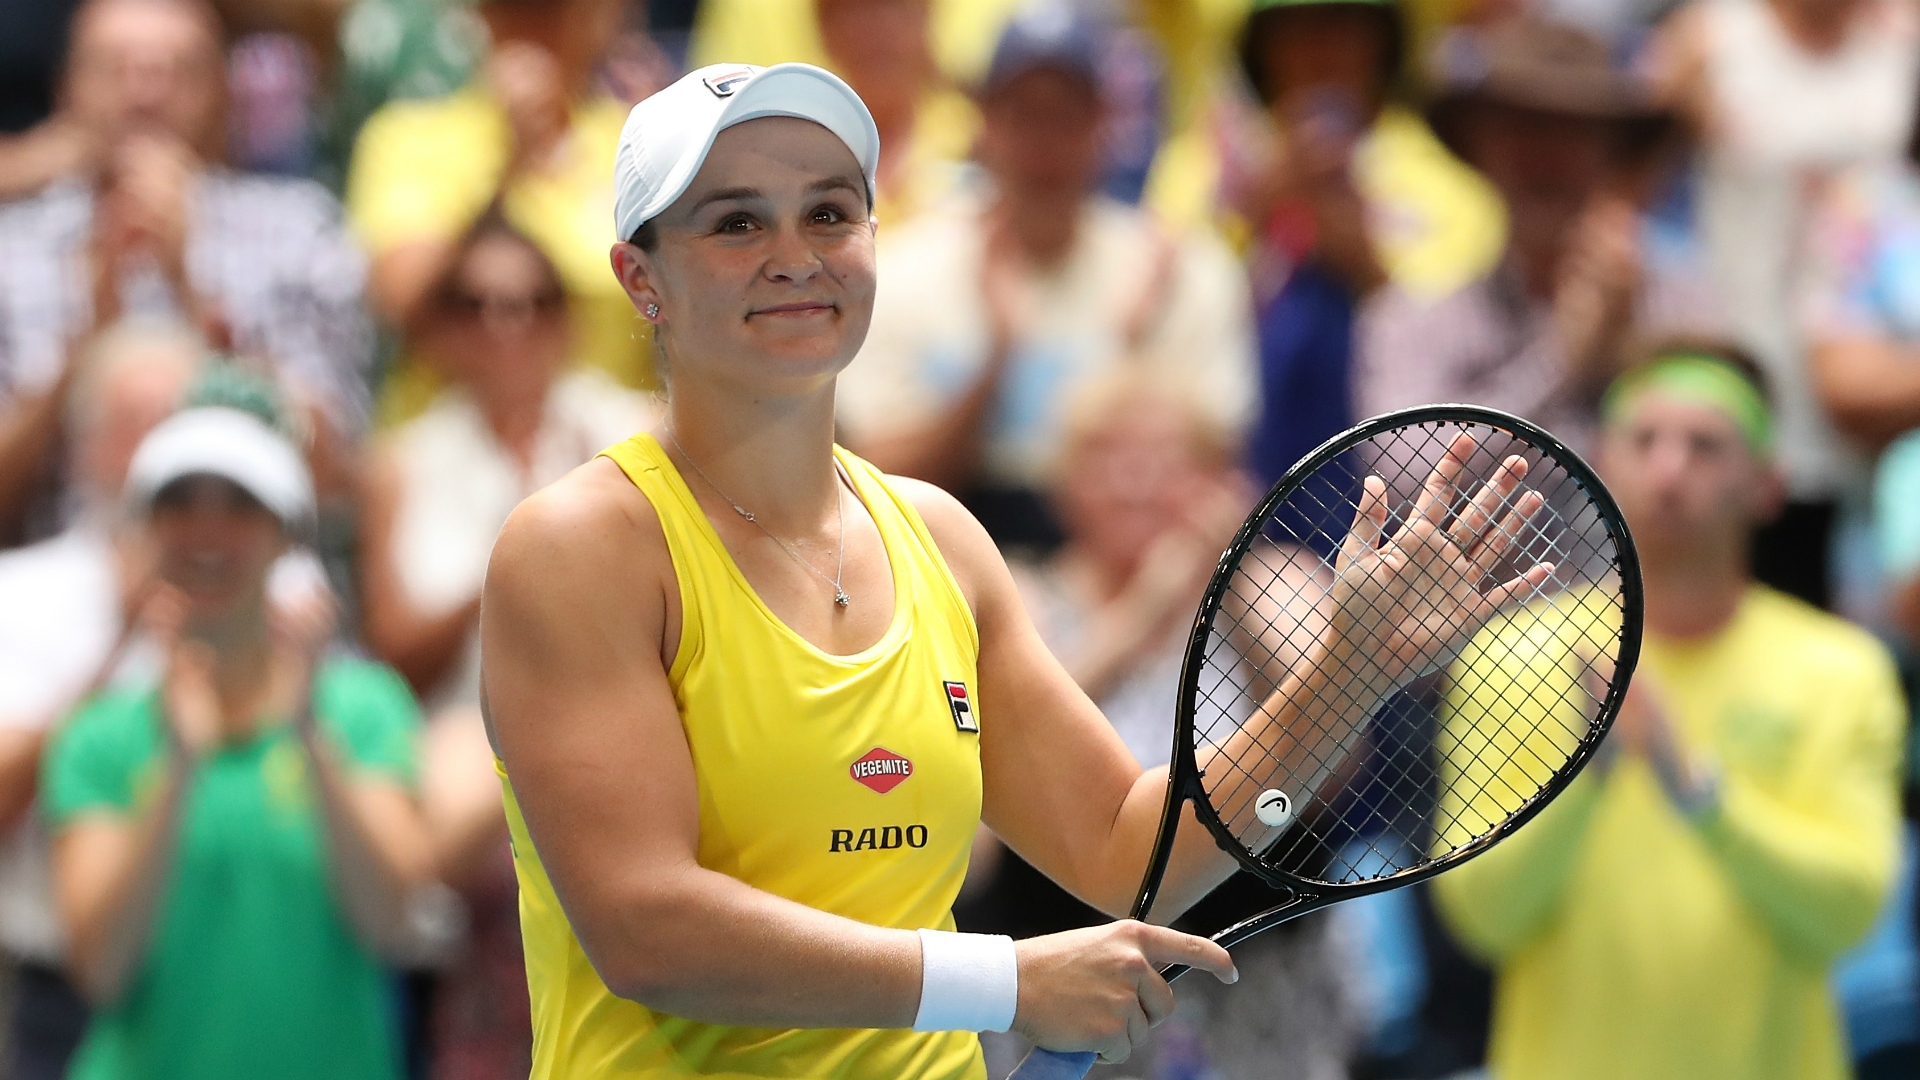 The first day of the Fed Cup final delivered two lopsided rubbers as Ashleigh Barty and Kristina Mladenovic shone in the Perth sunshine.